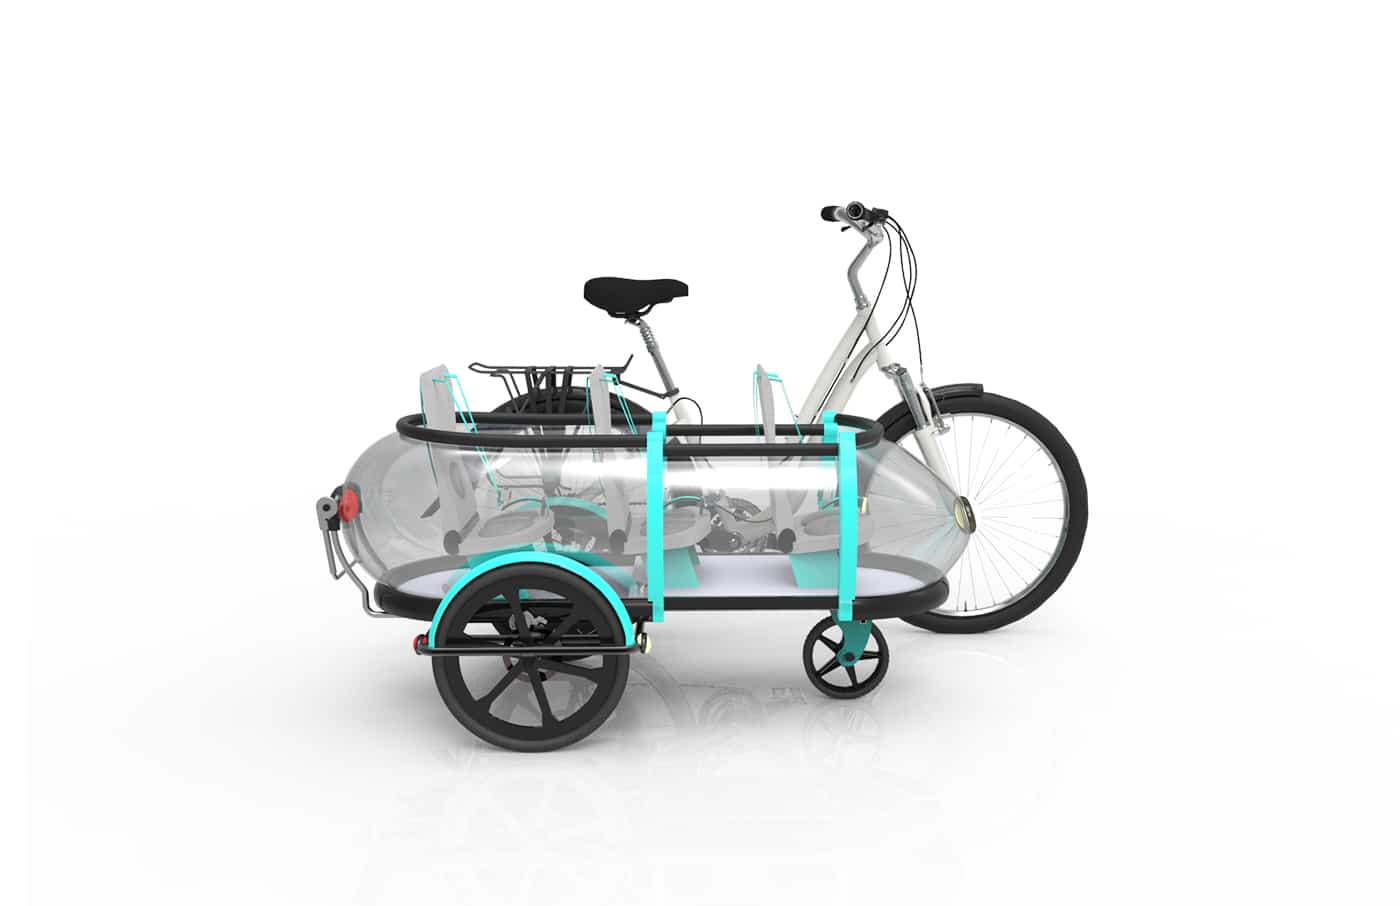 SideBuddy-by-Jordi-Hans-Design-Bycycle-Trailer,-Cargo-Bike,-Side-Trailer,-Kid-Bike-trailer,-by-Jonkoping-Sweden-Design-Consuting-5